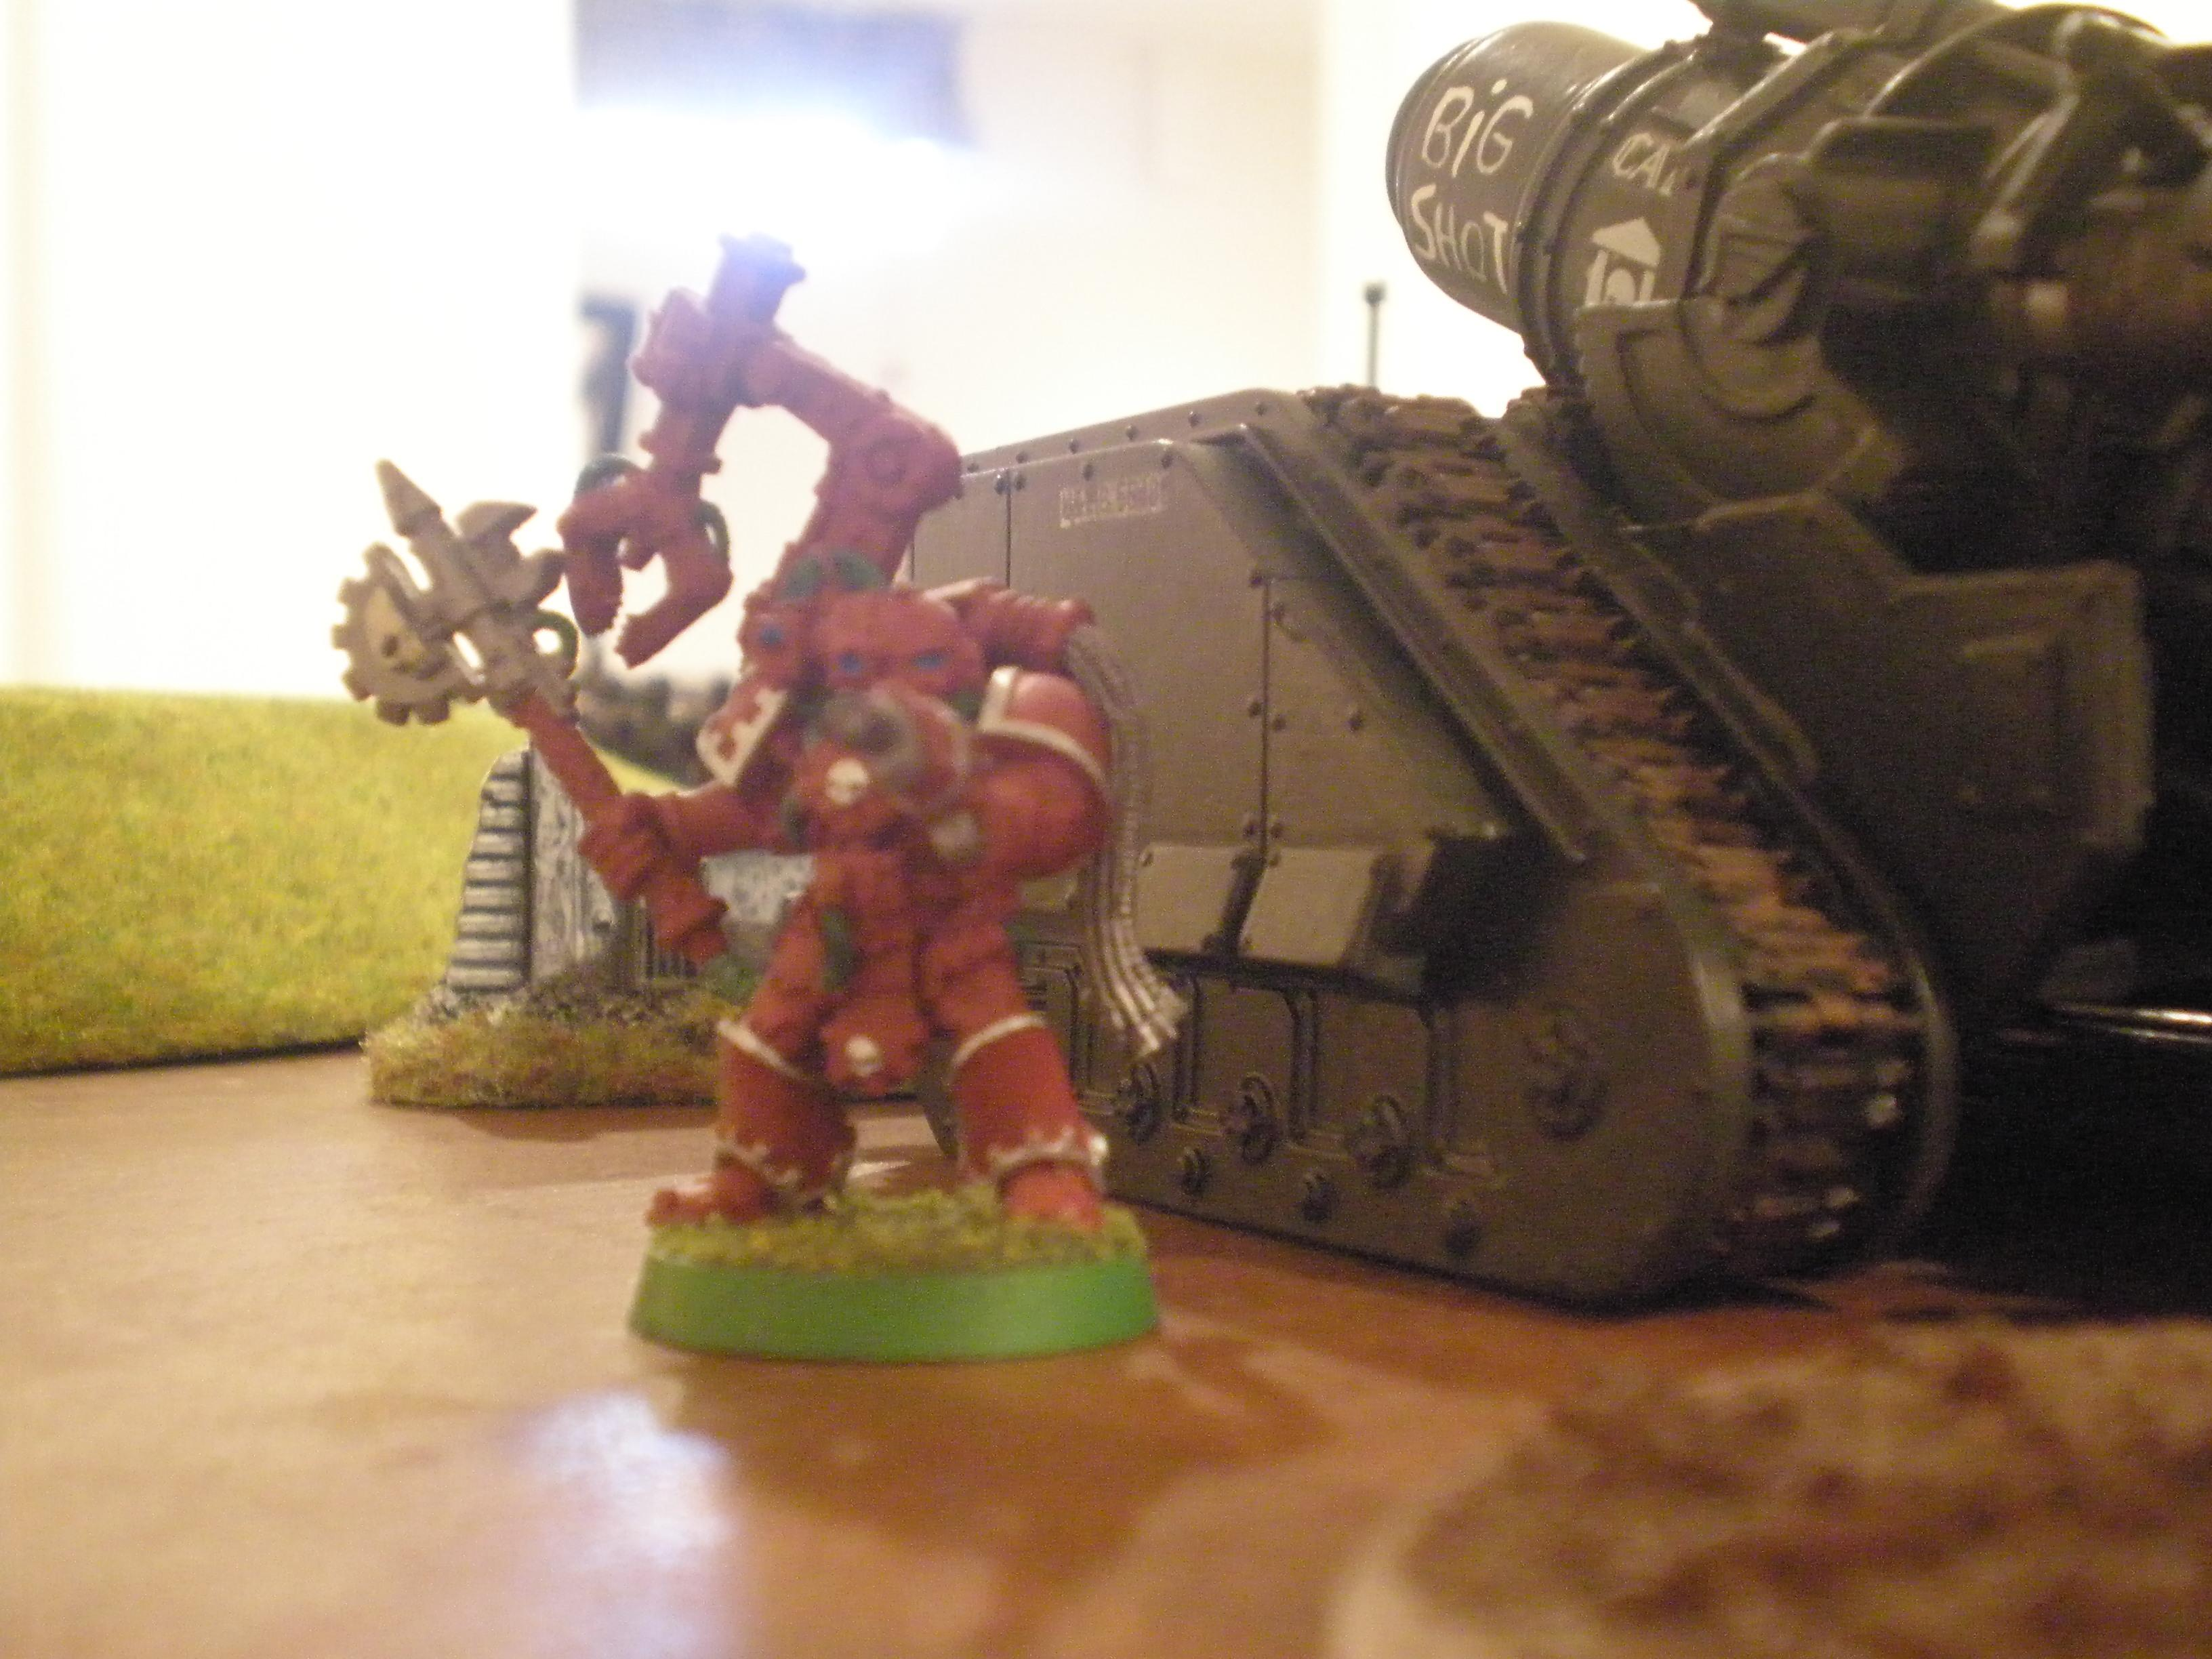 Imperial Guard, A tech adept zealously guards this artillery vehicle